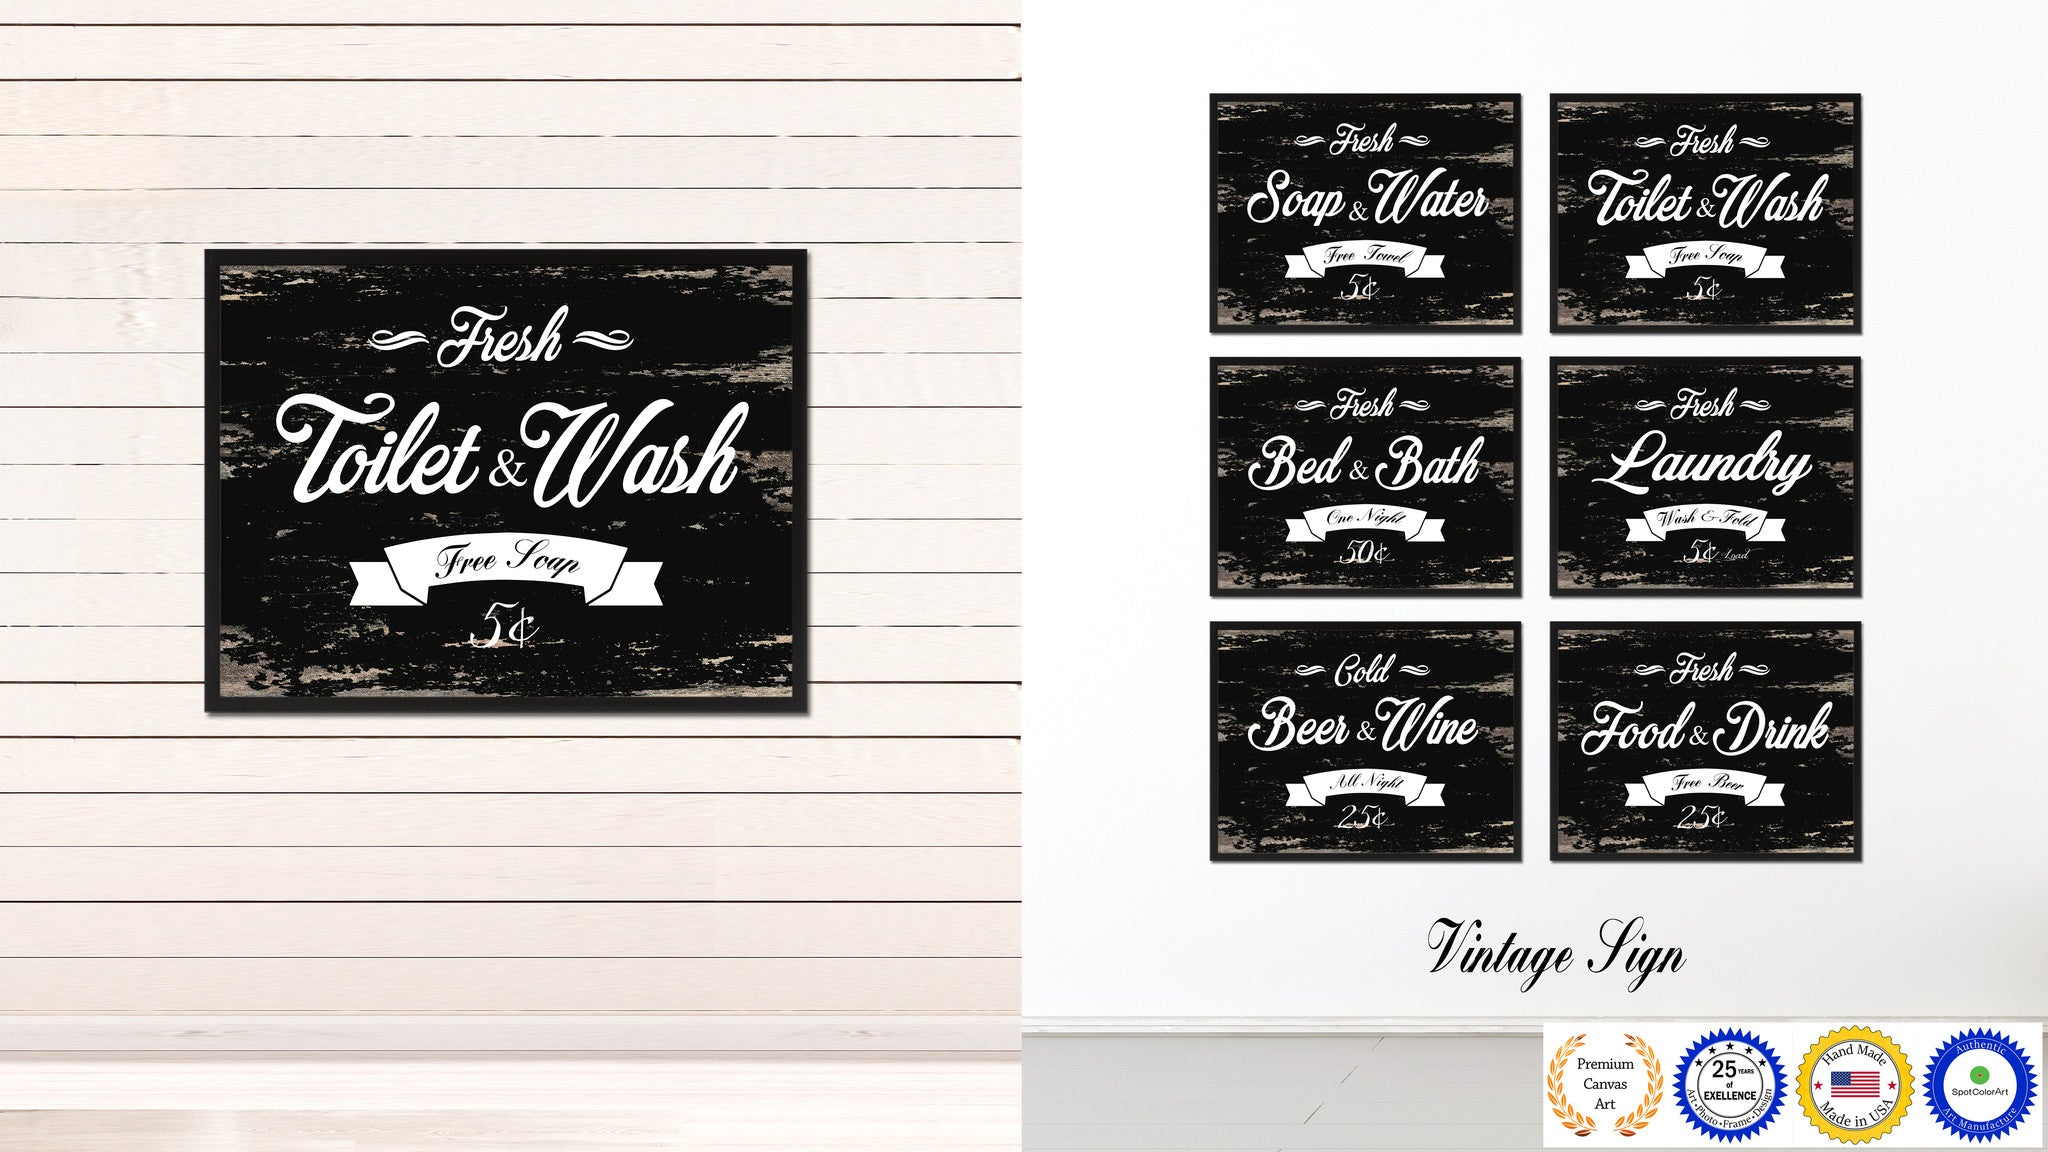 Fresh Toilet & Wash Vintage Sign Black Canvas Print Home Decor Wall Art Gifts Picture Frames